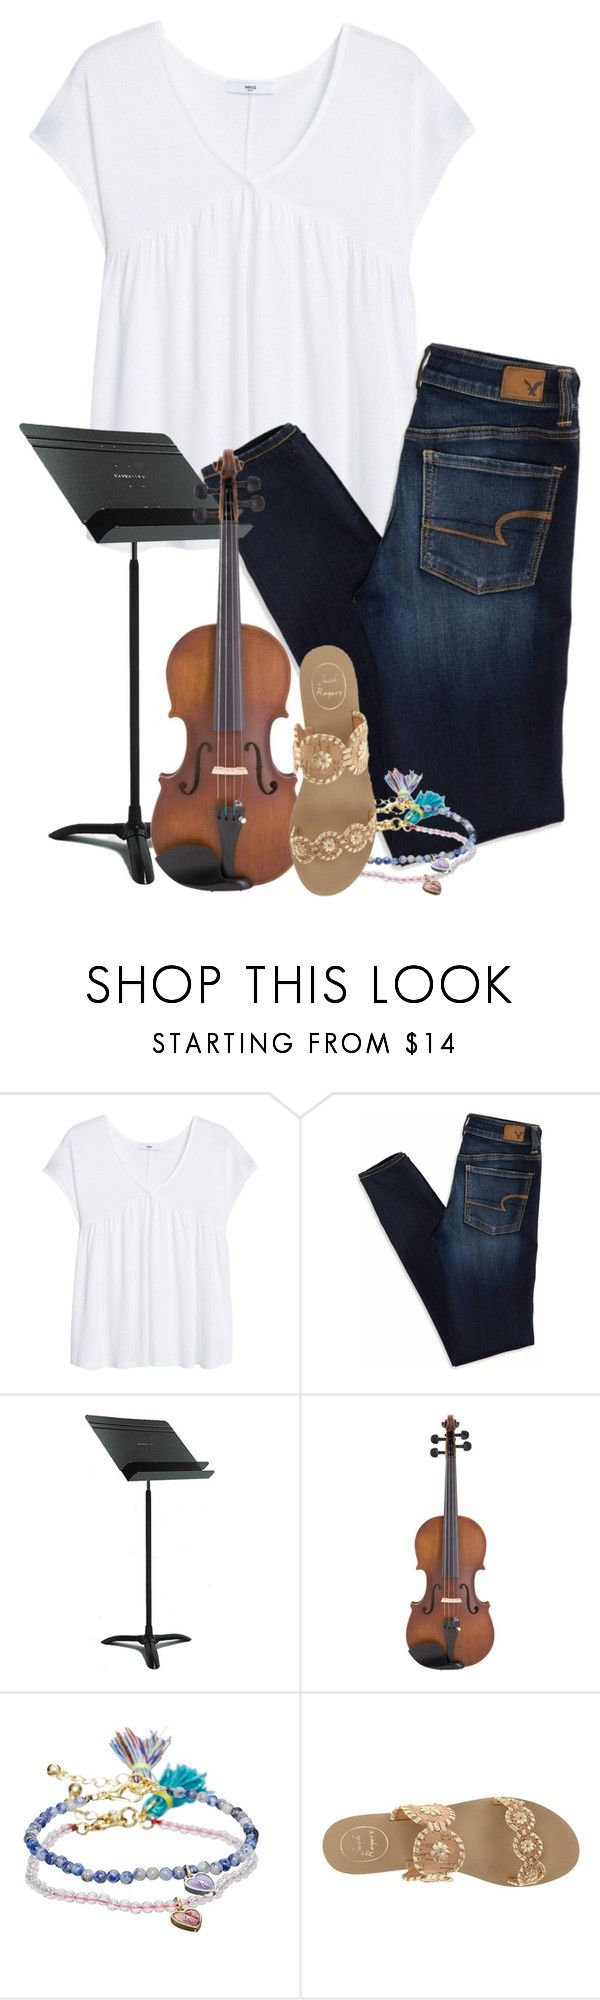 """""""Violin Lessons"""" by simply-grace ❤ liked on Polyvore featuring MANGO, American Eagle Outfitters, Manhasset, LE'VAR, ASOS and Jack Rogers"""